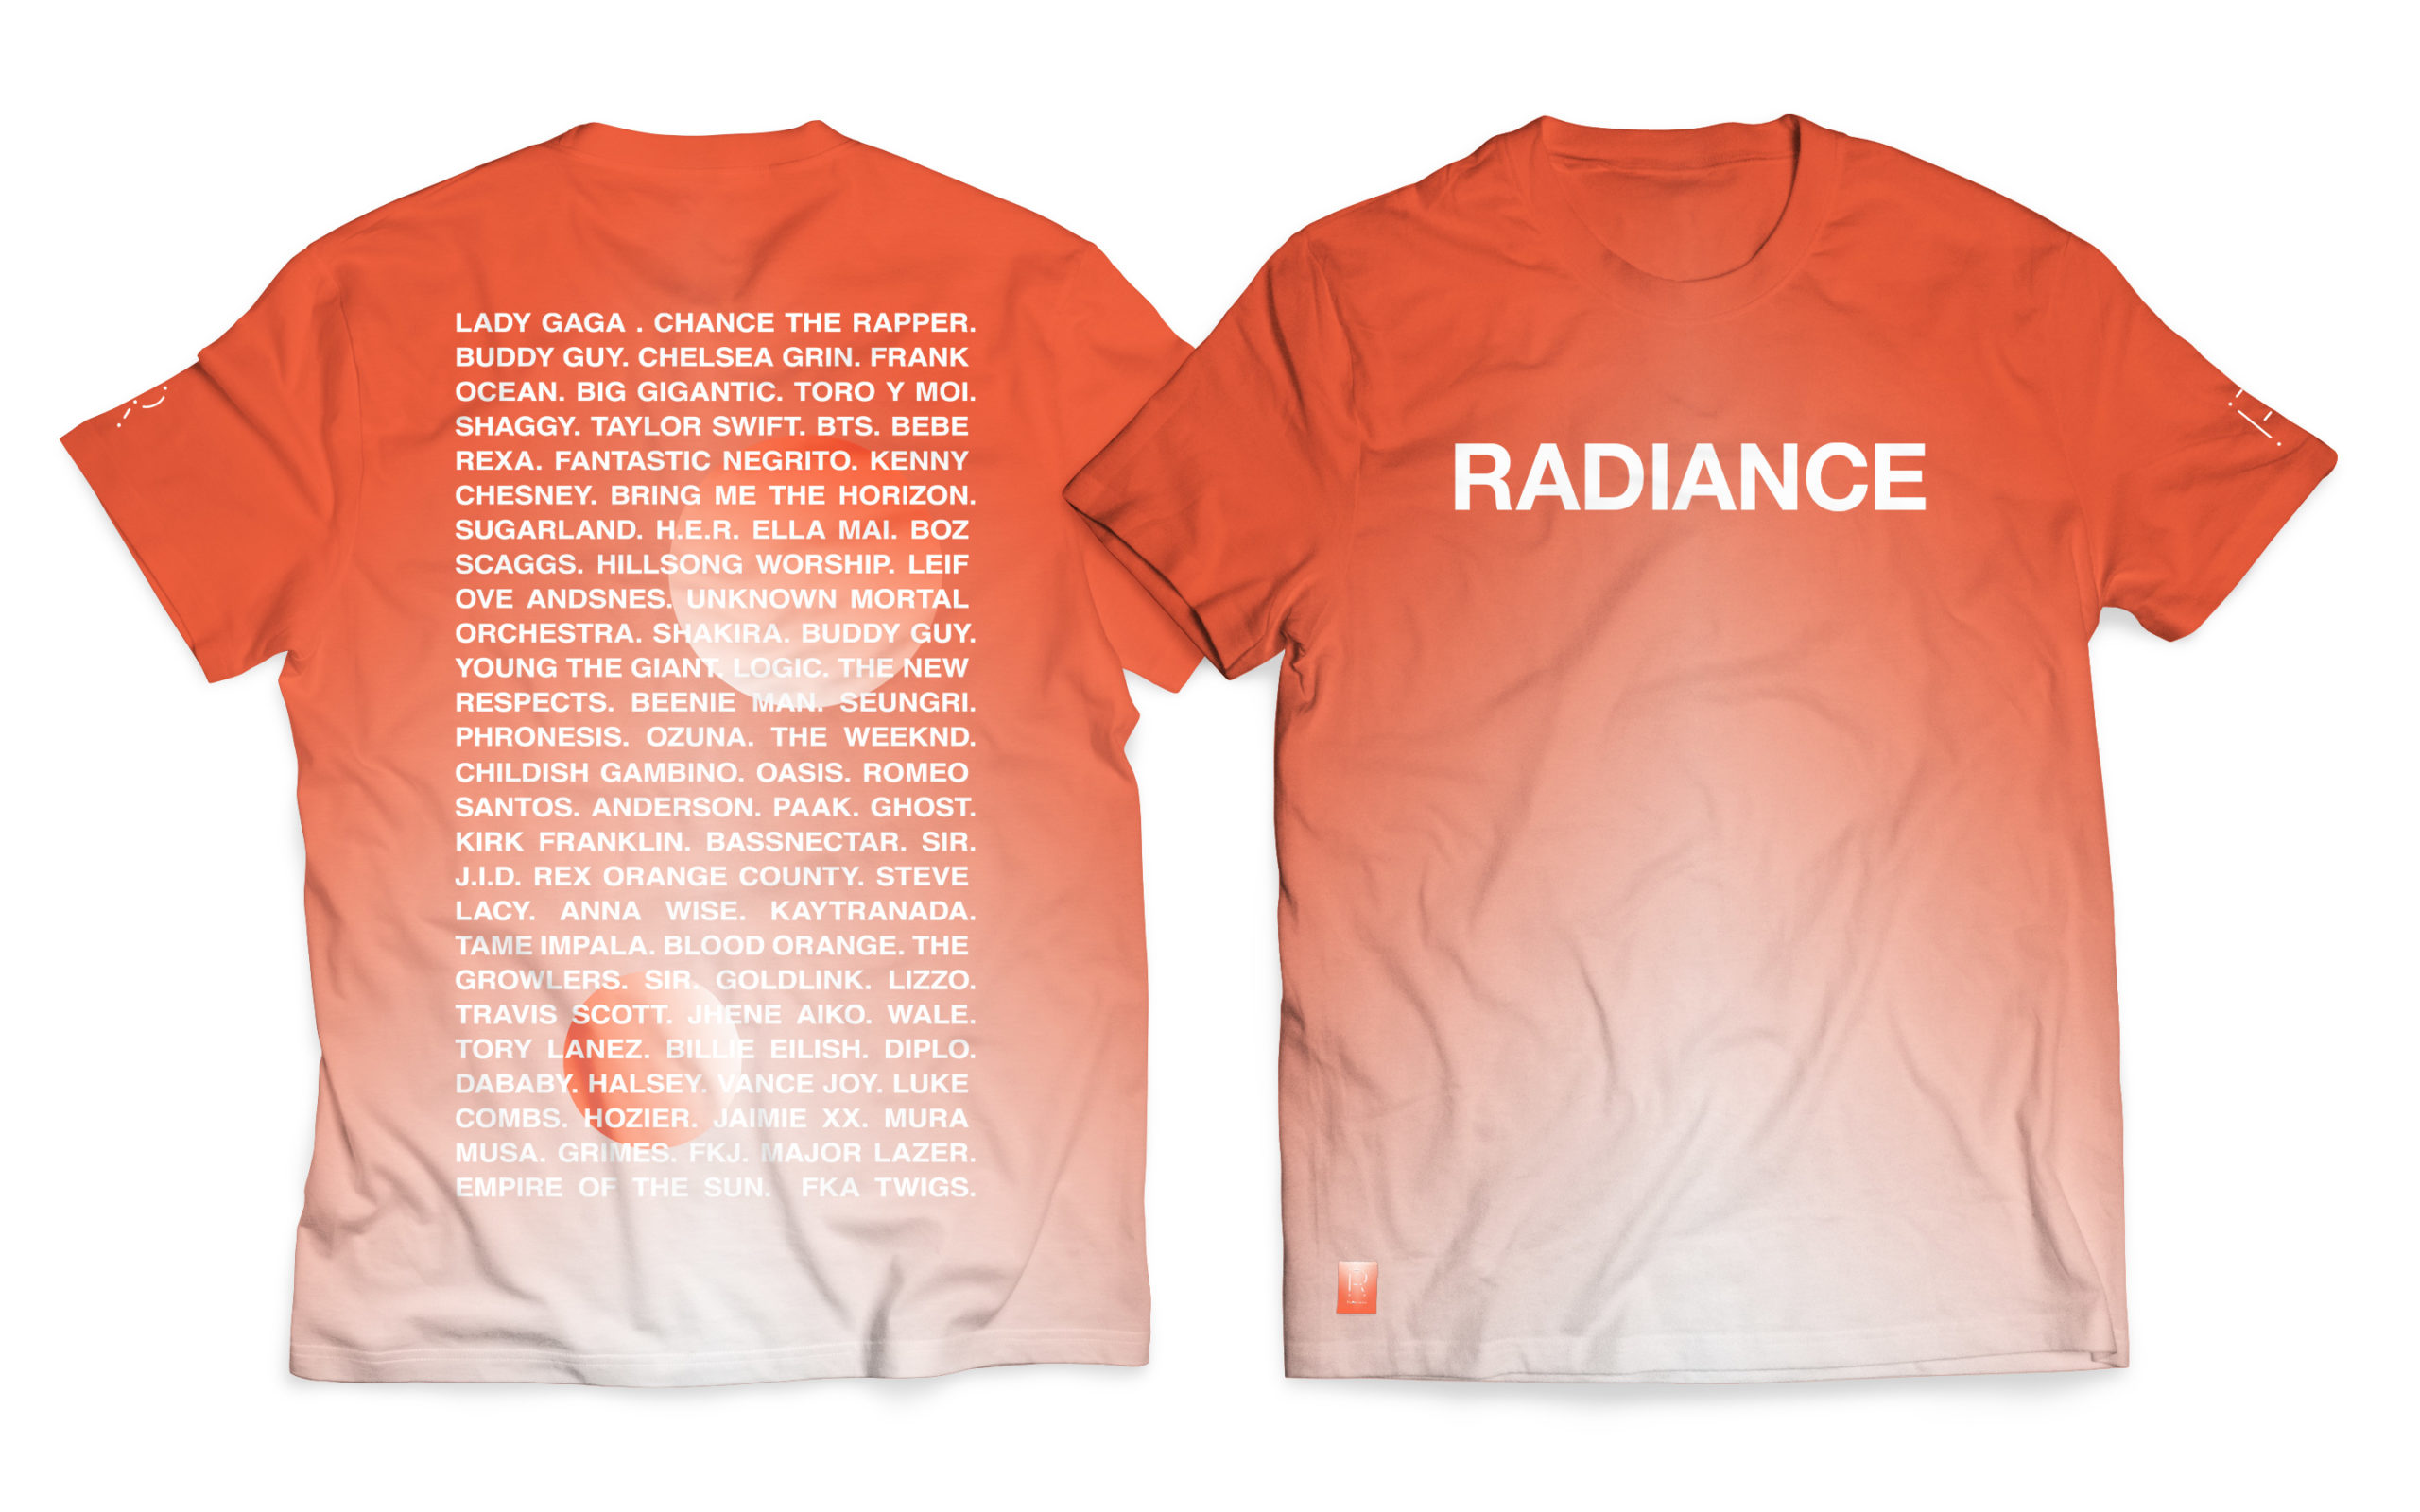 Radiance-Tee-shirts-scaled